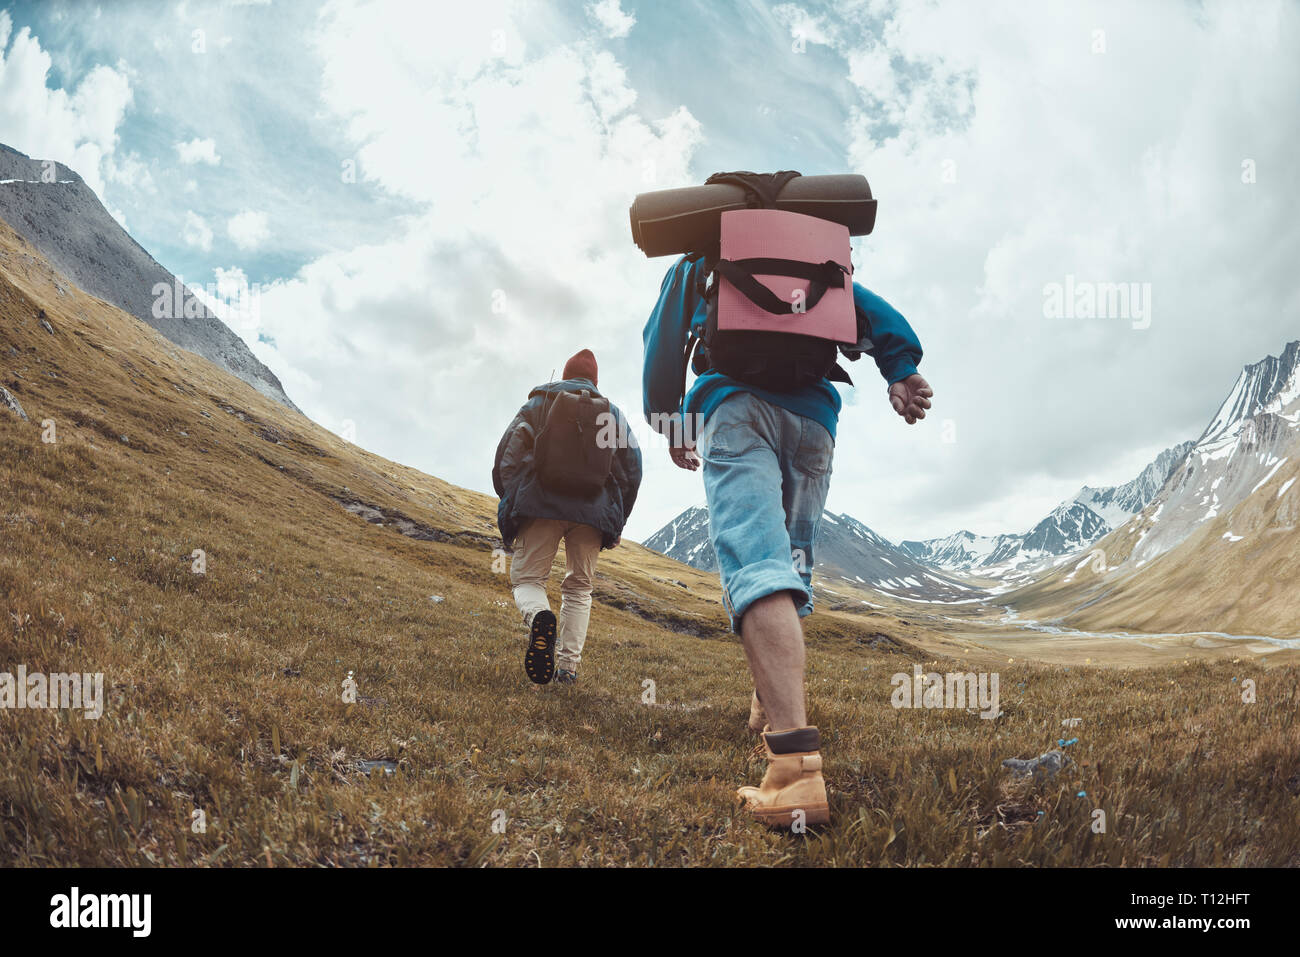 Two hikers in casual clothes and backpacks goes uphill in mountains Stock Photo